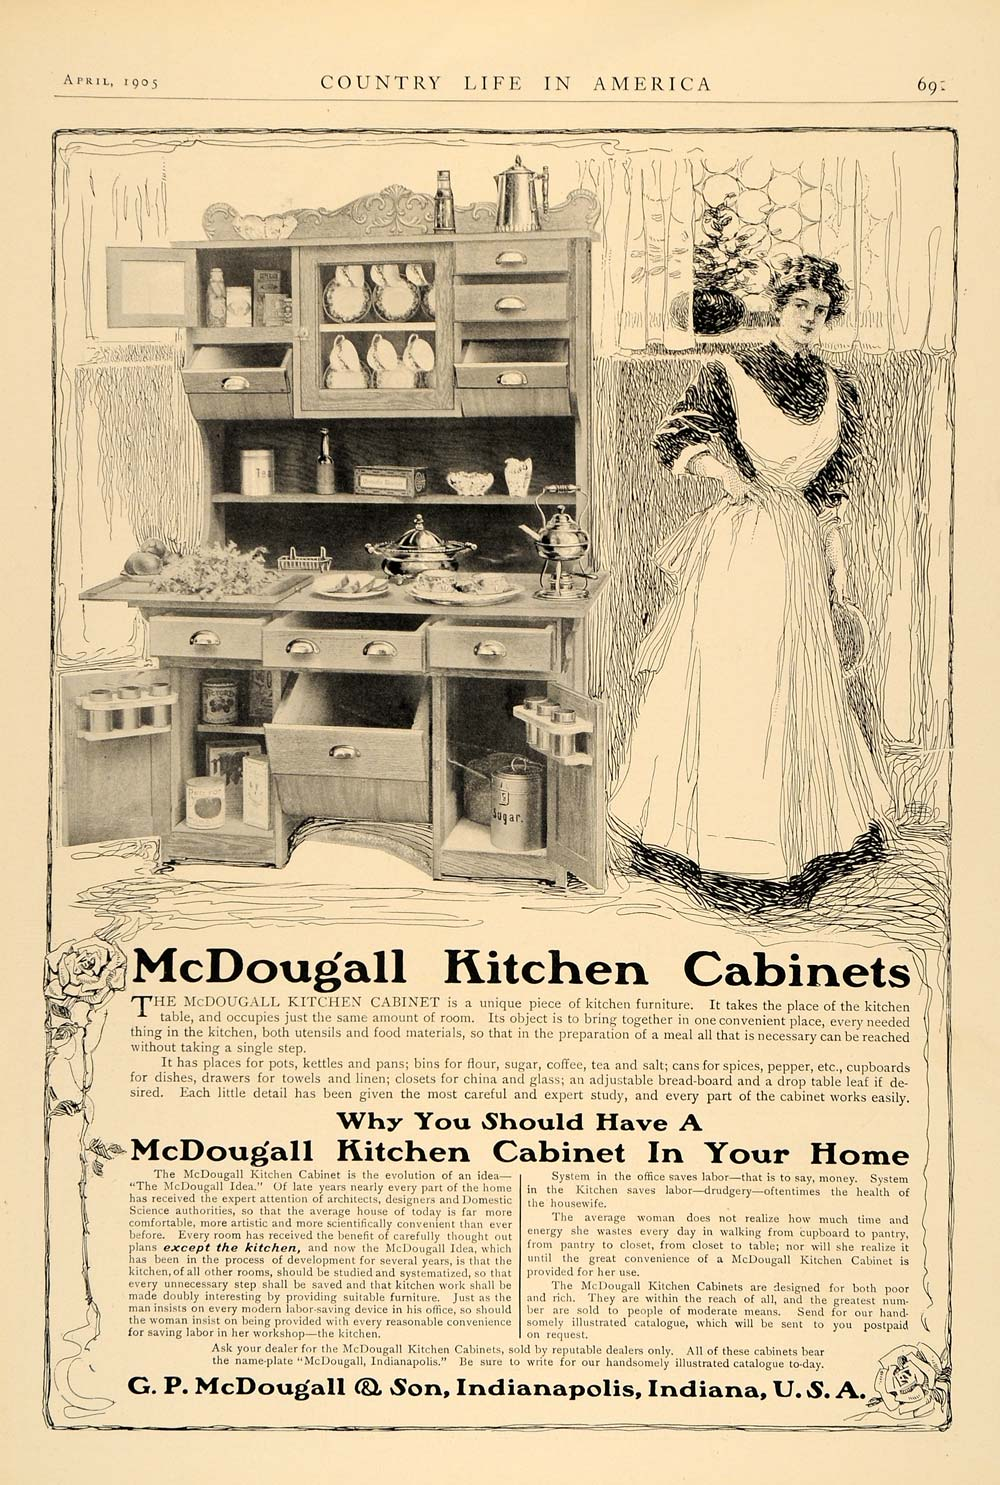 Sunday Adverts: G.P. McDougall & Son Kitchen Cabinets